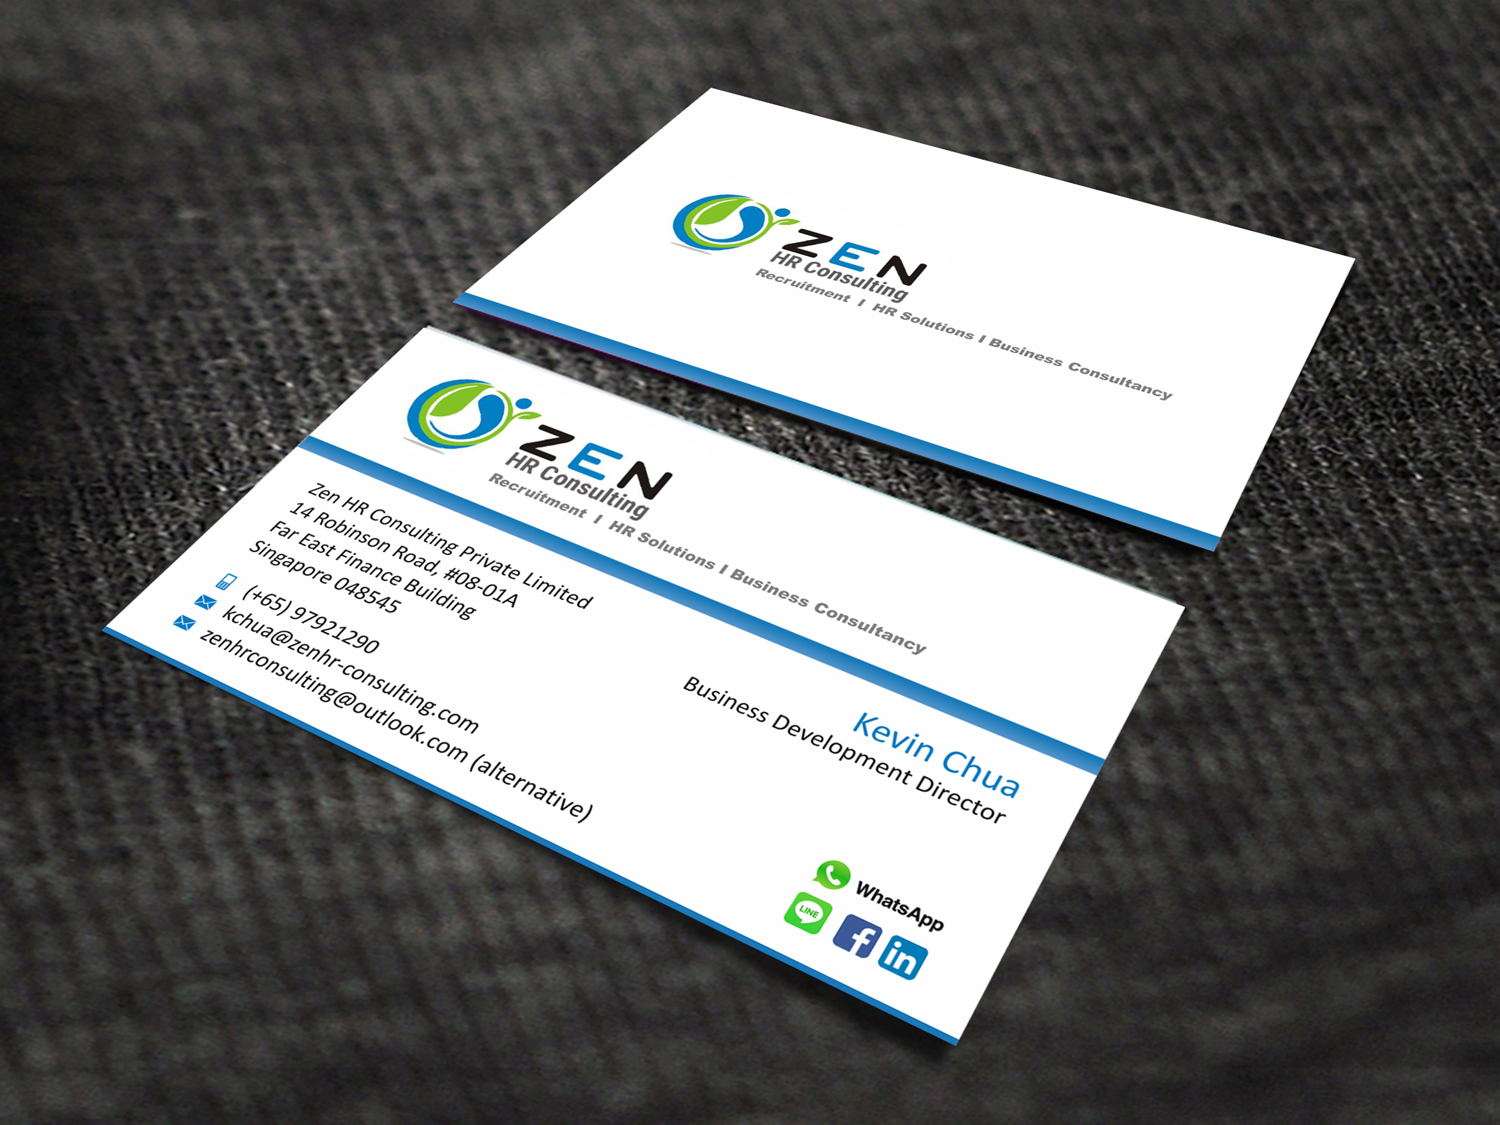 Serious modern business consultant business card design for a business card design by skydesign for this project design 10574097 reheart Image collections